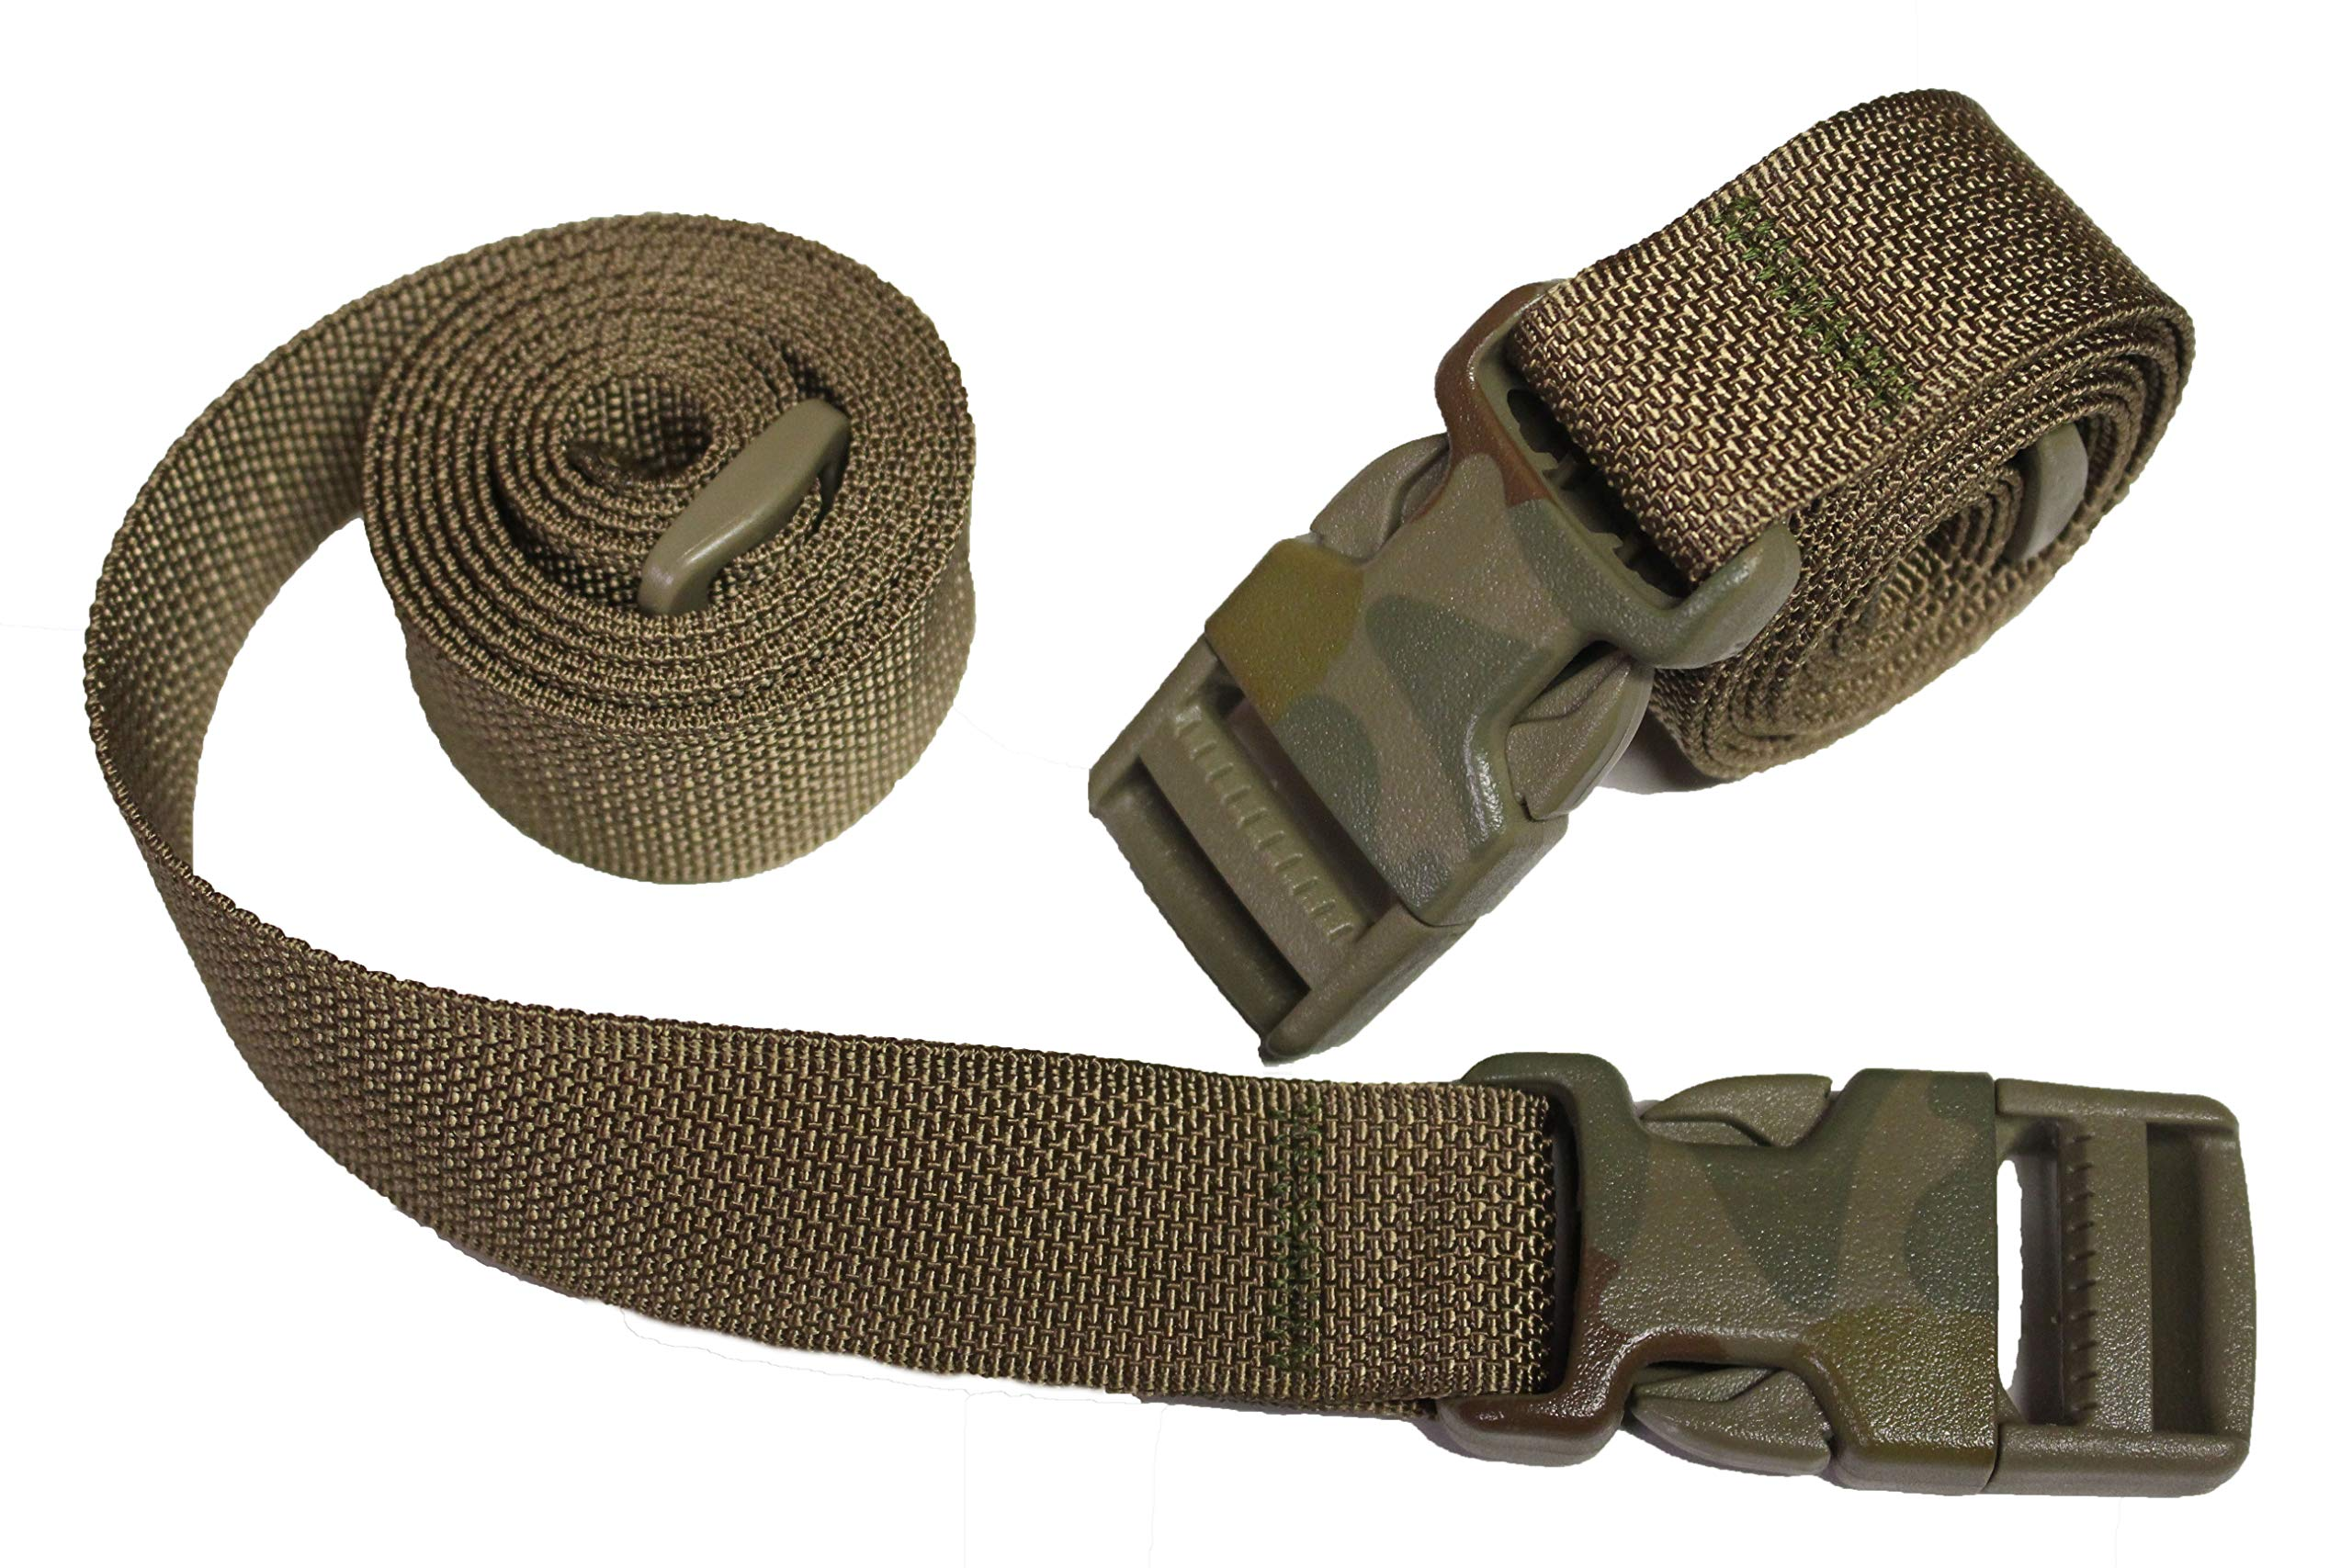 Molle Backpack Accessory Straps - Quick Release Buckle - Made in USA (Coyote Brown (Camo Buckle & HD Mil Spec Nylon))